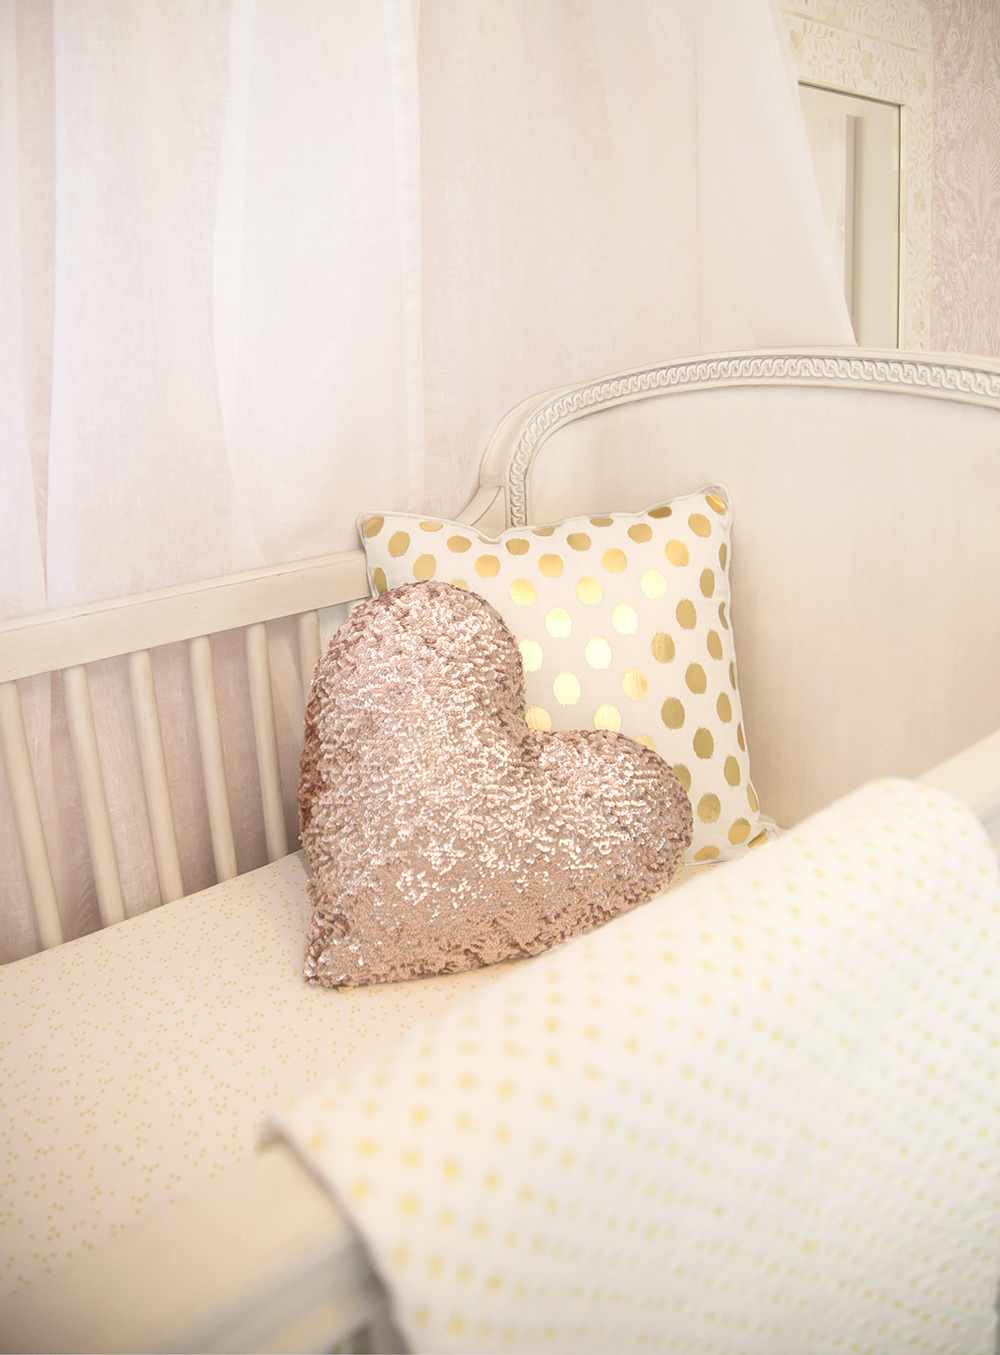 Heart and gold pillows in crib